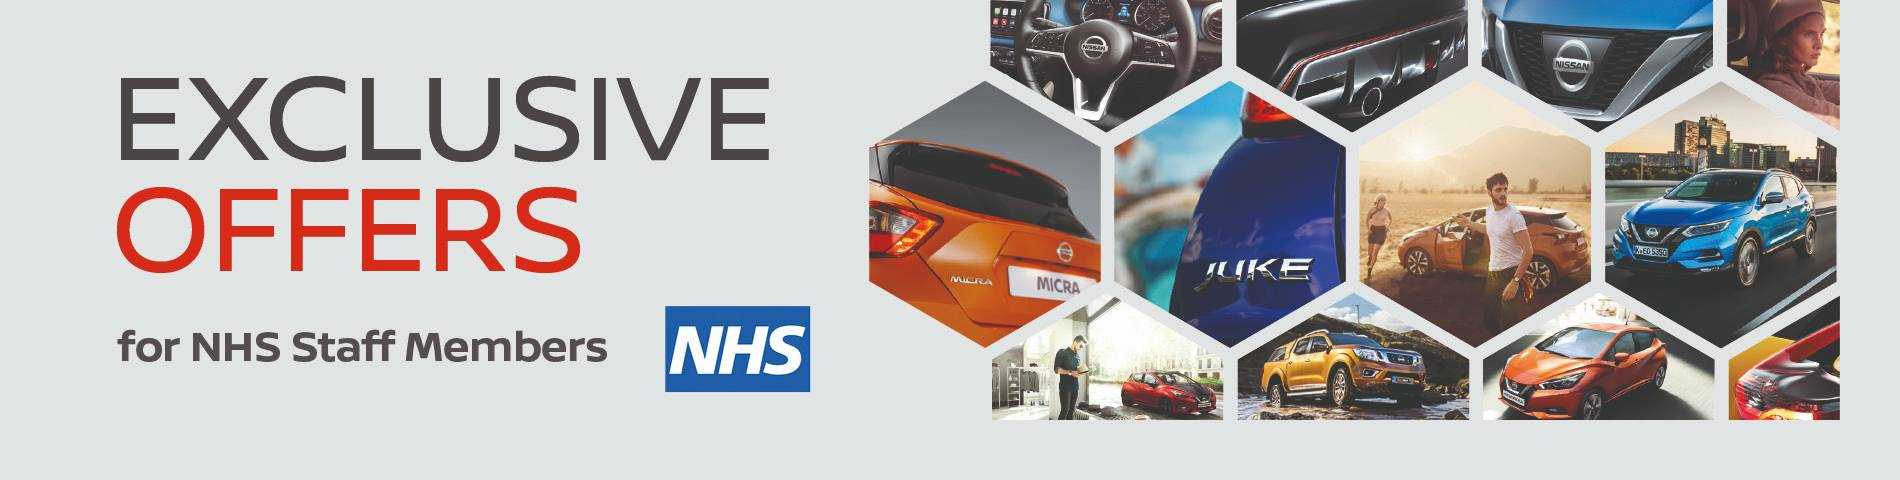 West Way Leasing Offers for NHS Staff